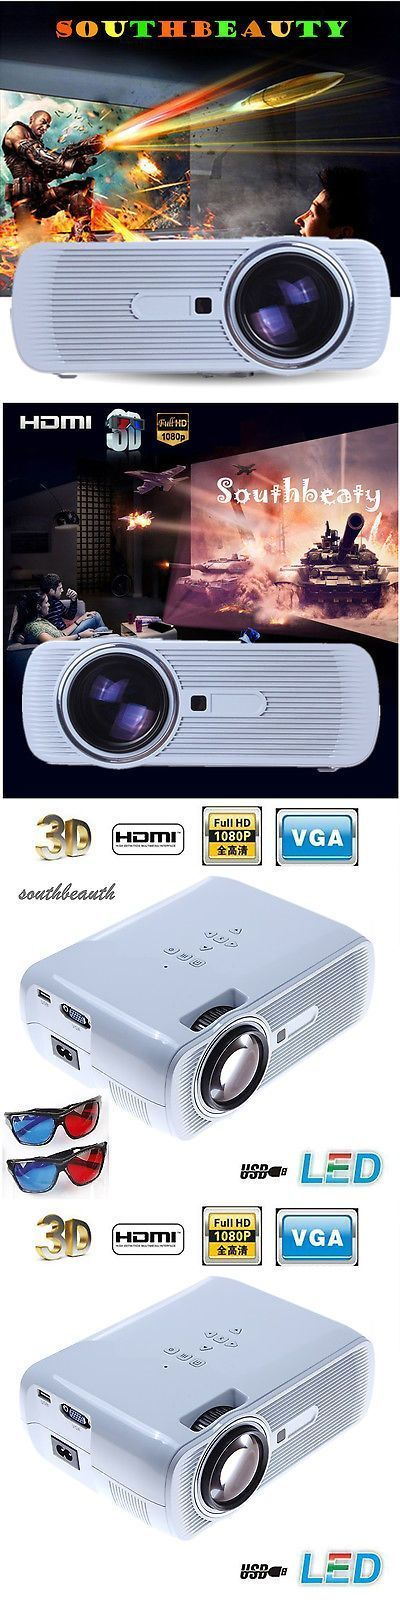 Home Theater Projectors: 3000 Lumens Hd 1080P 3Led Lcd 3D Vga Hdmi Tv Pc Sd Home Theater Projector Cinema BUY IT NOW ONLY: $71.5 #homecinemaprojector